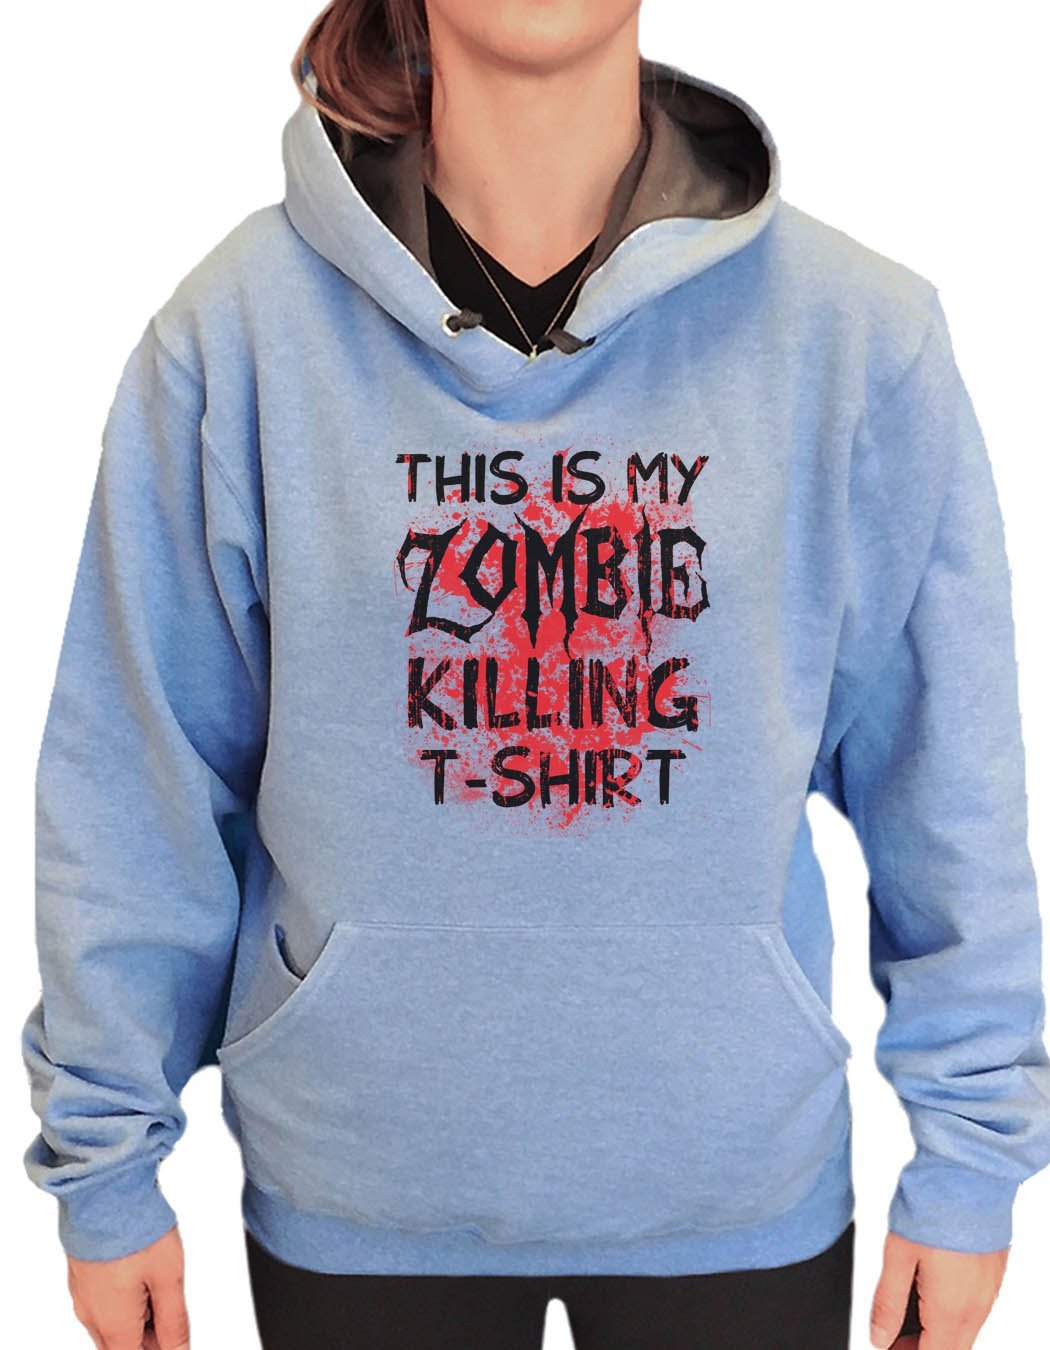 UNISEX HOODIE - This Is My Zombie Killing T-Shirt - FUNNY MENS AND WOMENS HOODED SWEATSHIRTS - 2312 Funny Shirt Small / North Carolina Blue